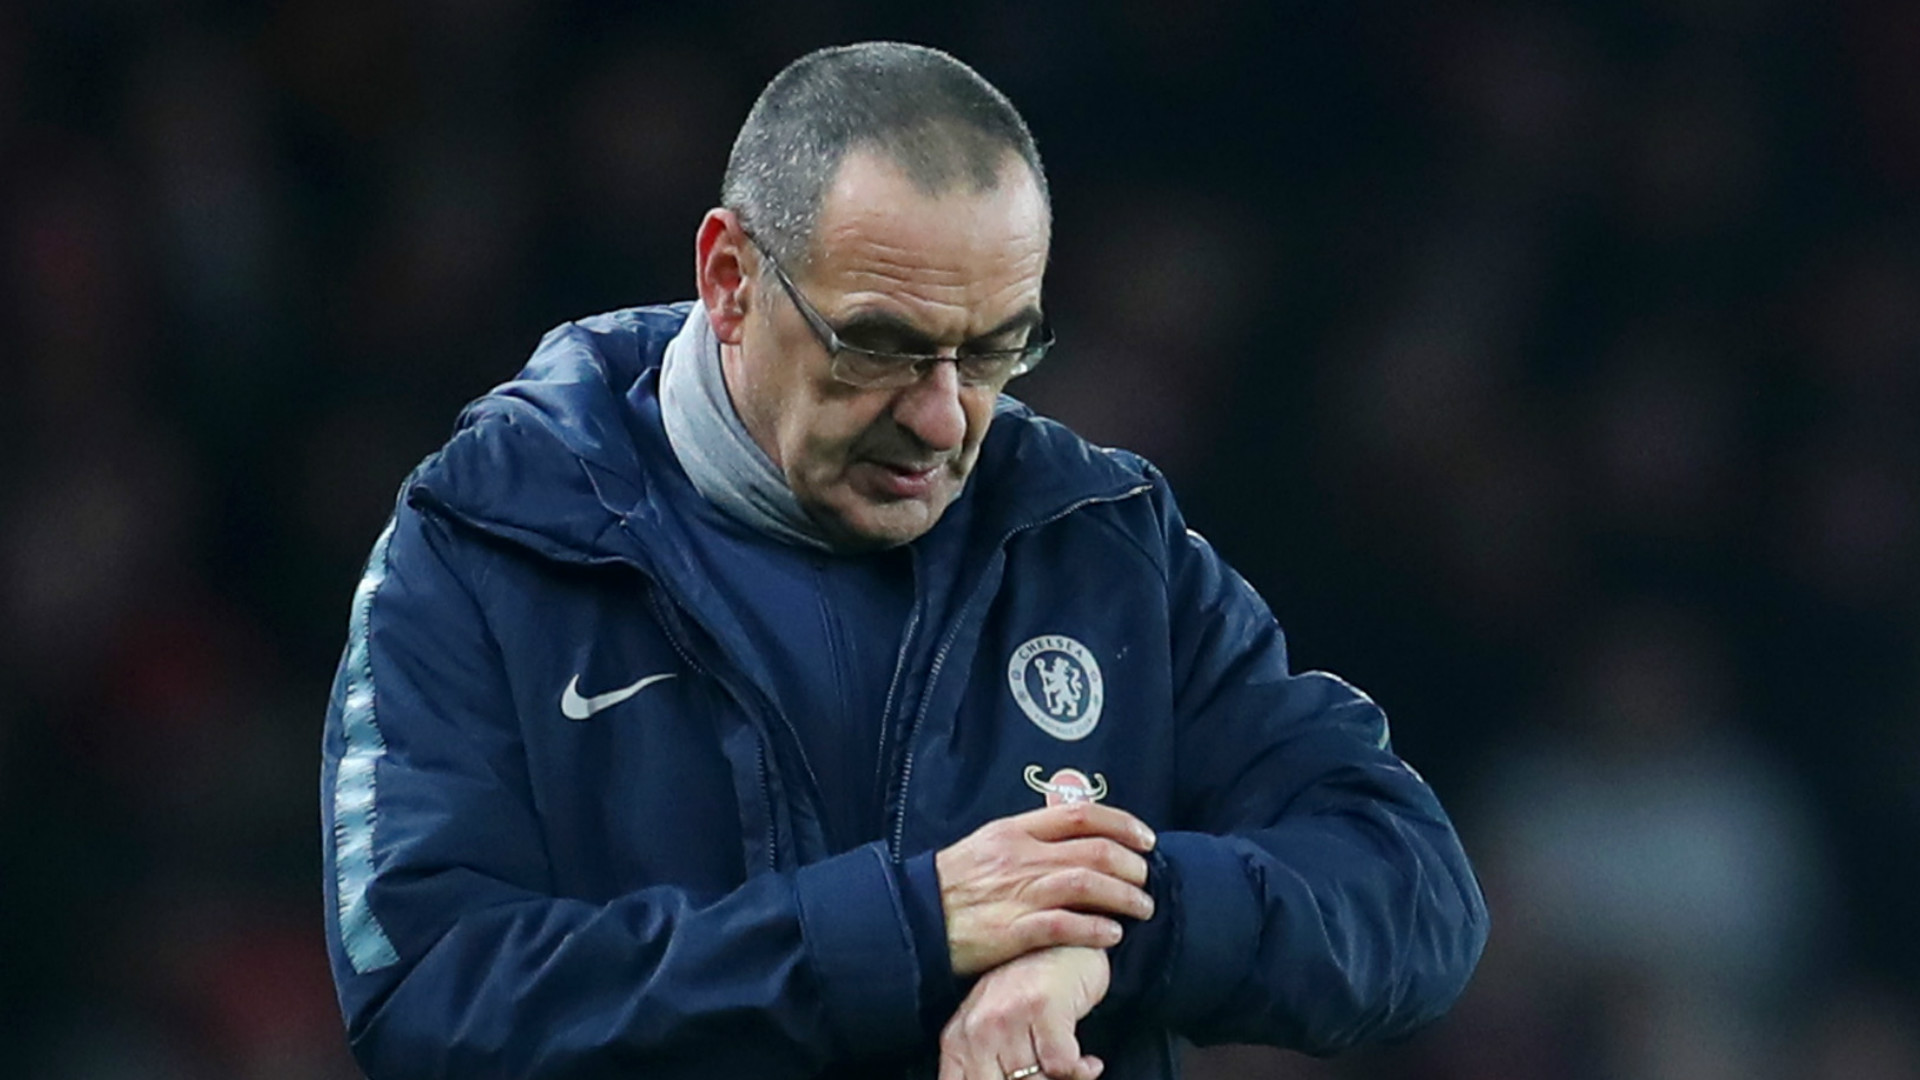 Official: Chelsea sacks head coach, appoints former Chelsea player